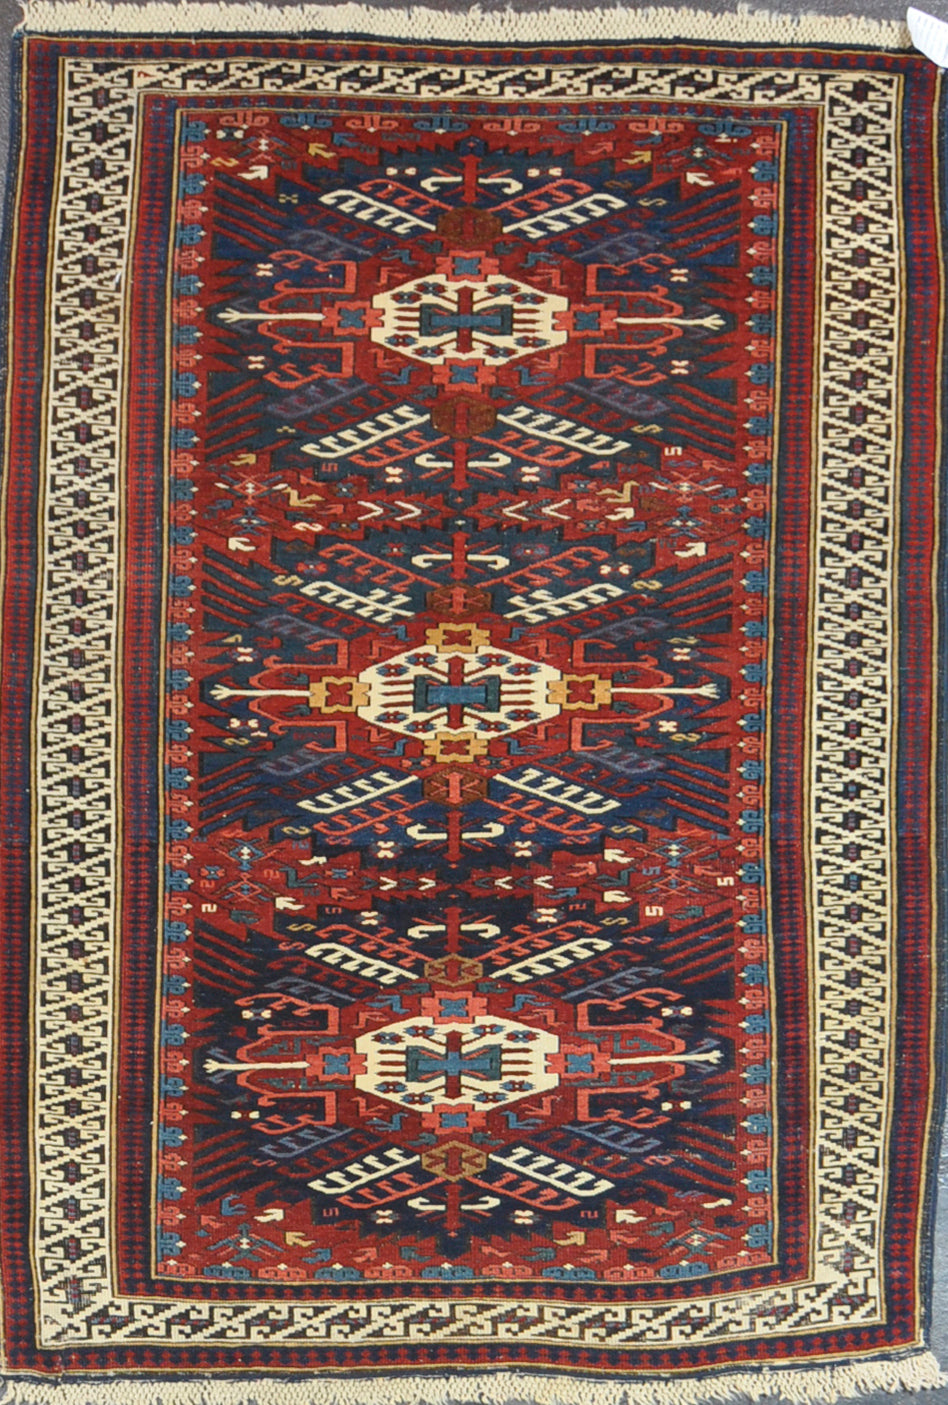 Rug Id 11443 Antique Kazak 4.2x5.9